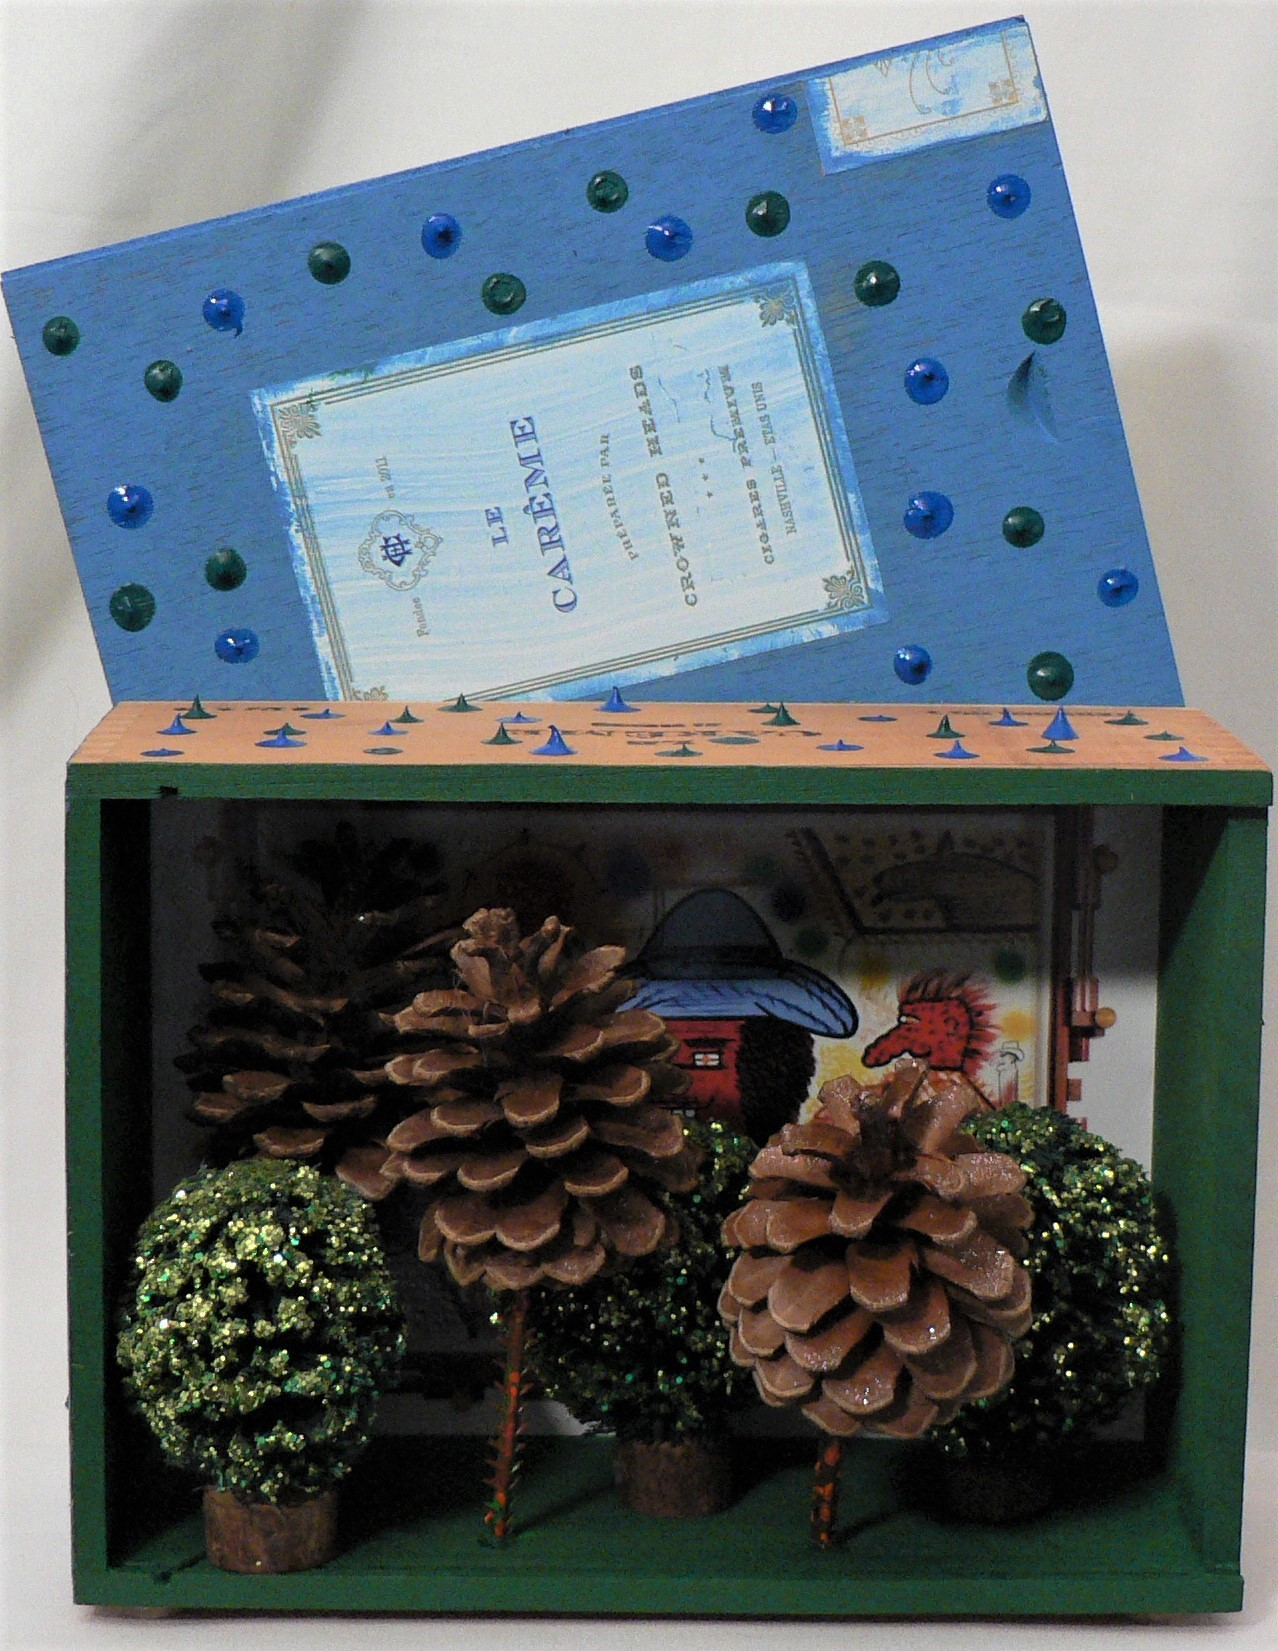 """You Can't See de Forest for da Trees - """"Create art that makes you happy."""" – Roy de ForestMaterials: Cigar wood box; Roy de Forest postcard (Brian Gross Fine Art); model railroad trees; glitter; pine cones; acrylic paint. Dimensions: 10""""H x 7""""W x 3""""D. Created: August 2019.Status: For Sale ($75)"""